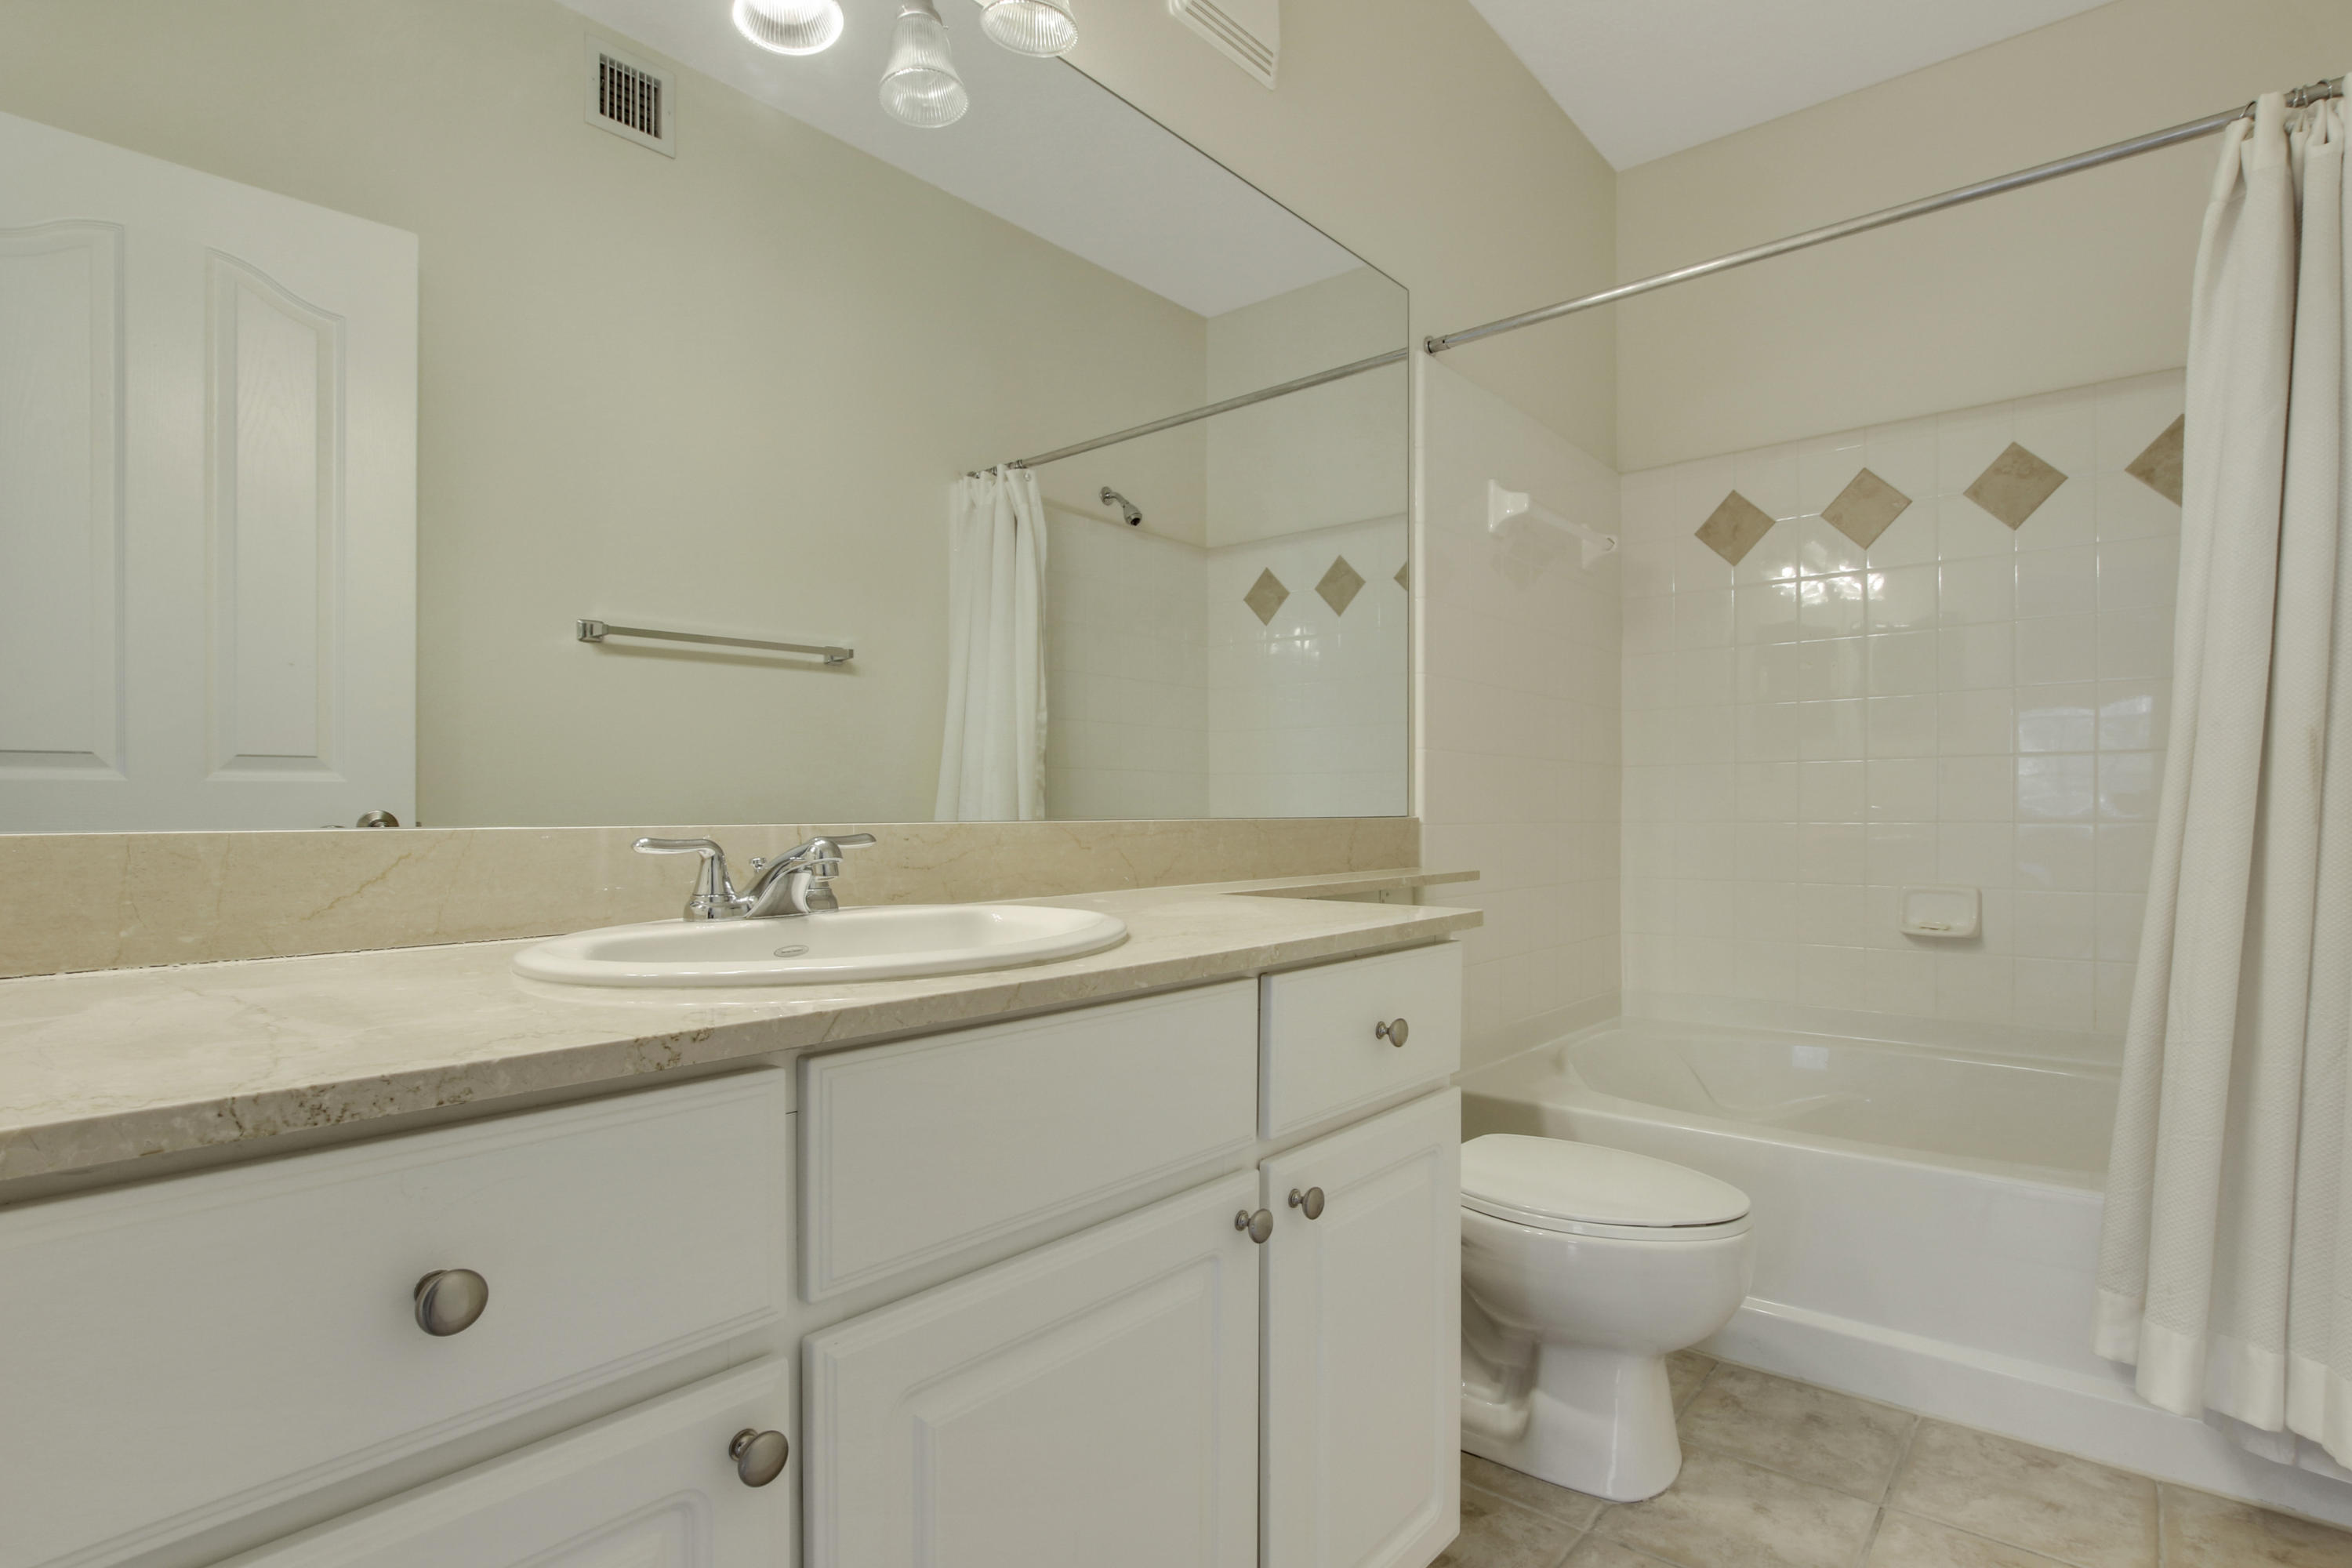 245 Murcia Drive 204  - Abacoa Homes - photo 13